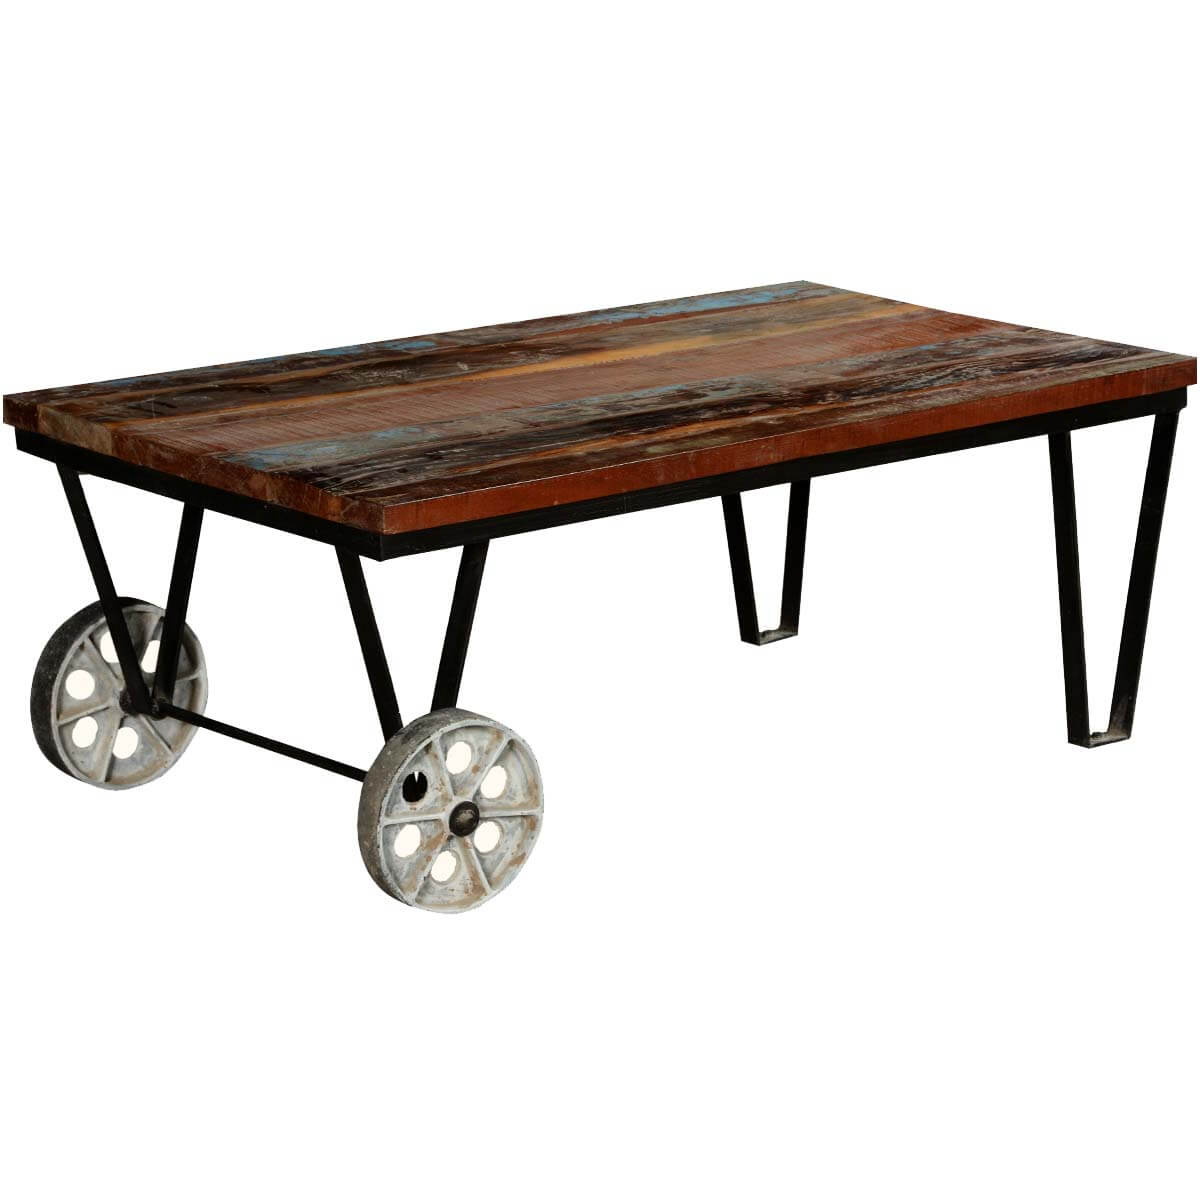 Reclaimed Mill Cart Coffee Table: Reclaimed Wood Industrial Style Factory Cart Coffee Table